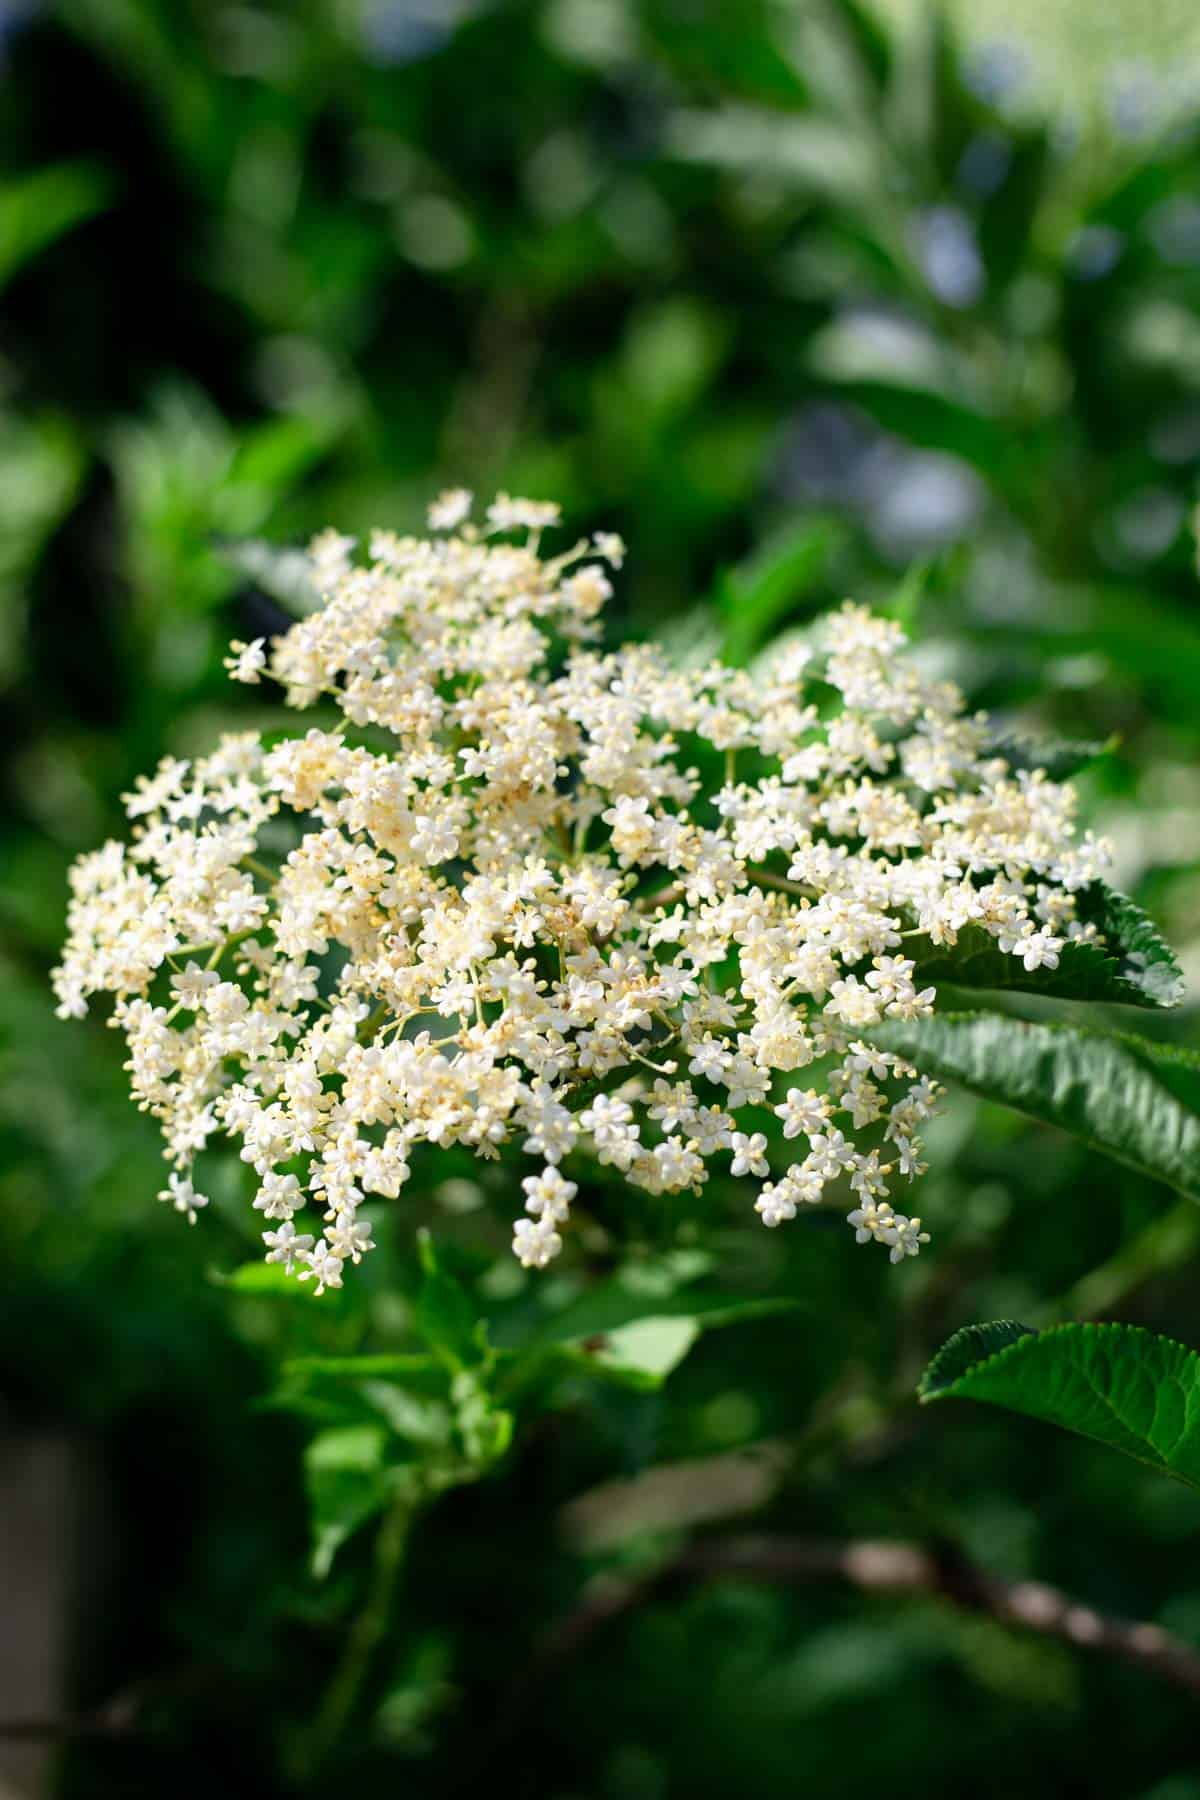 Classic elderflower cordial recipe #elderflower #cordial #summerdrink | via @annabanana.co